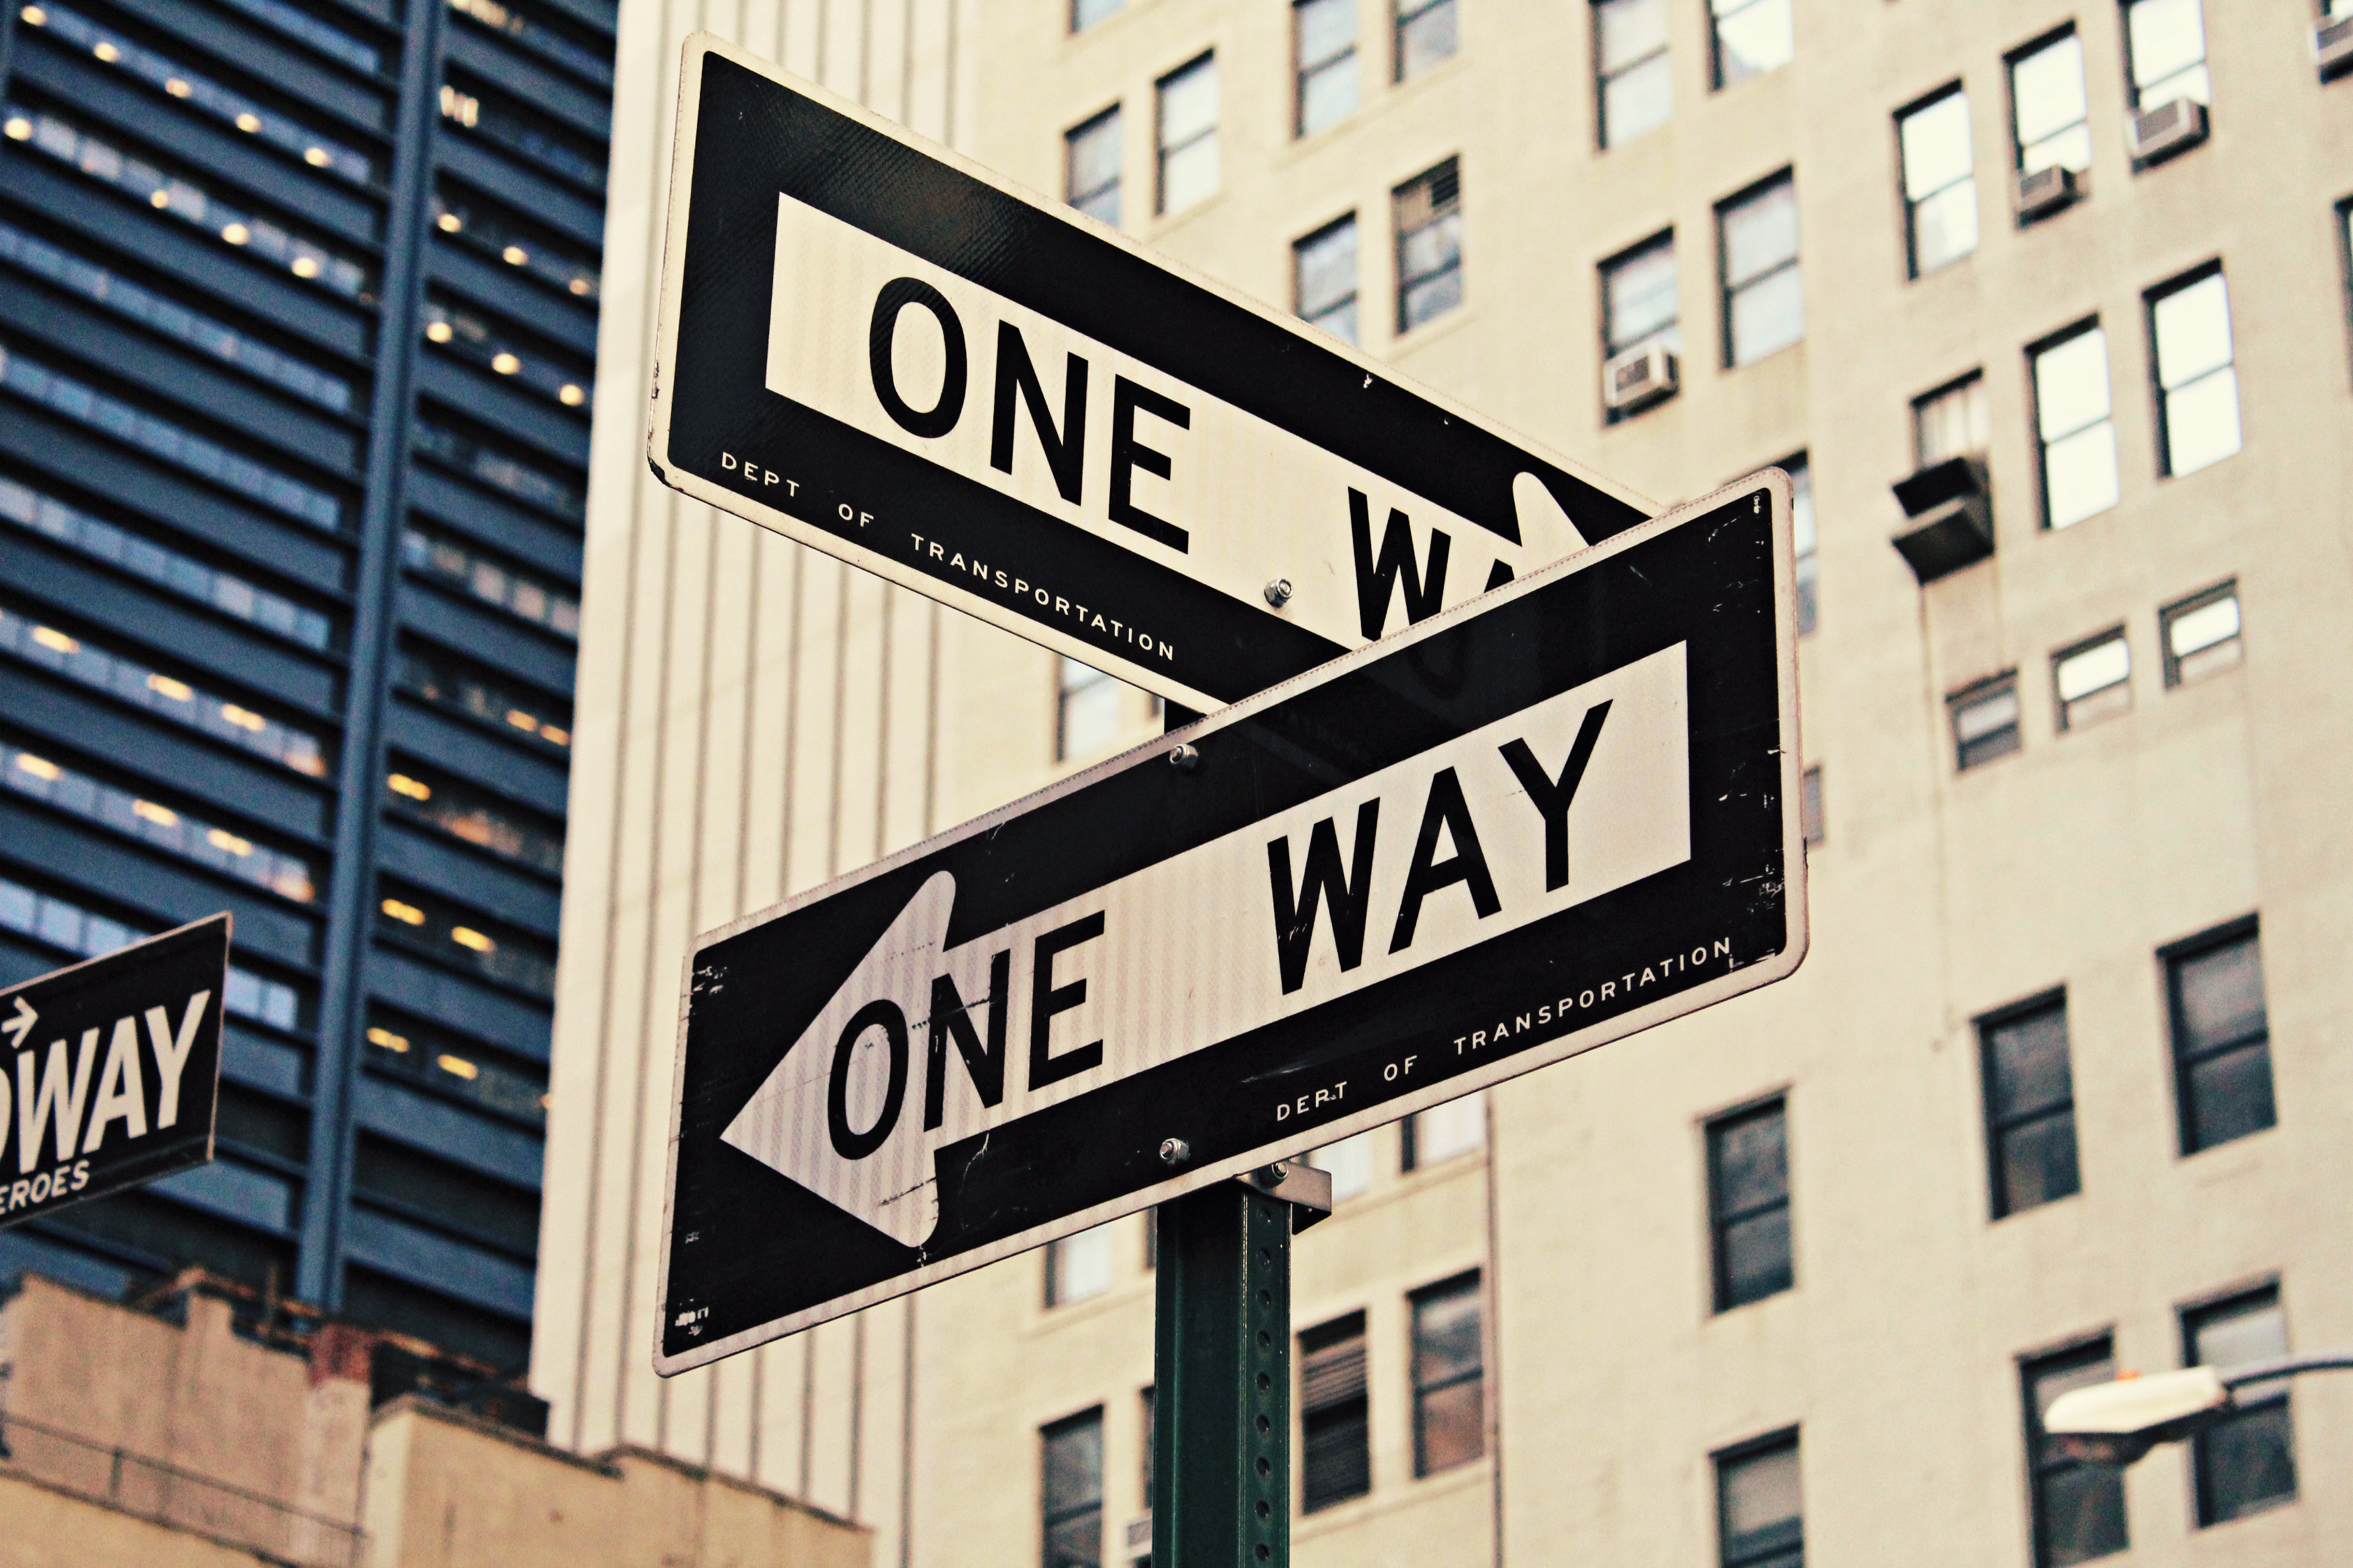 Two 'one way' street signs pointing in different directions